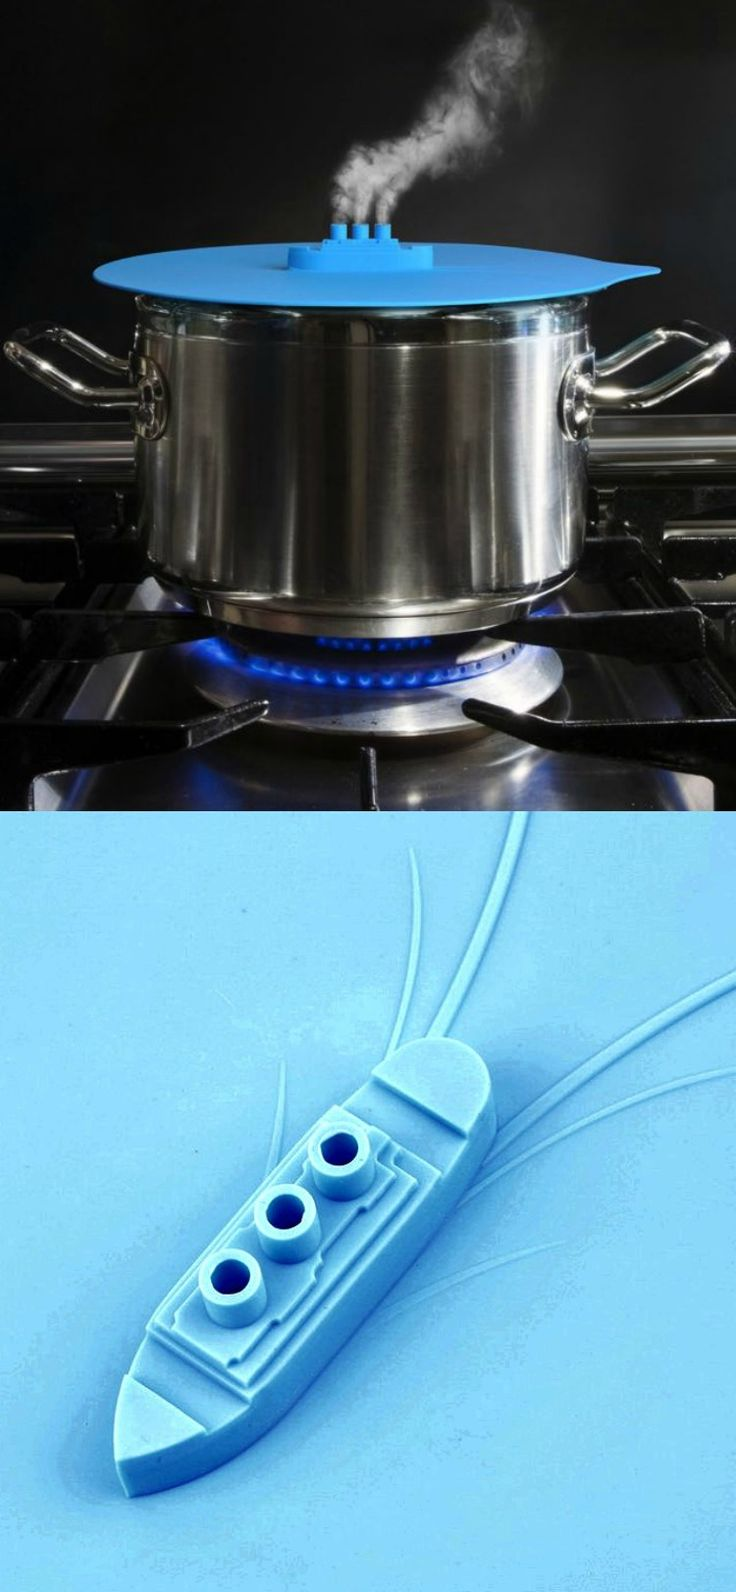 319 best Gadgets images on Pinterest | Cool things, Good ideas and ...